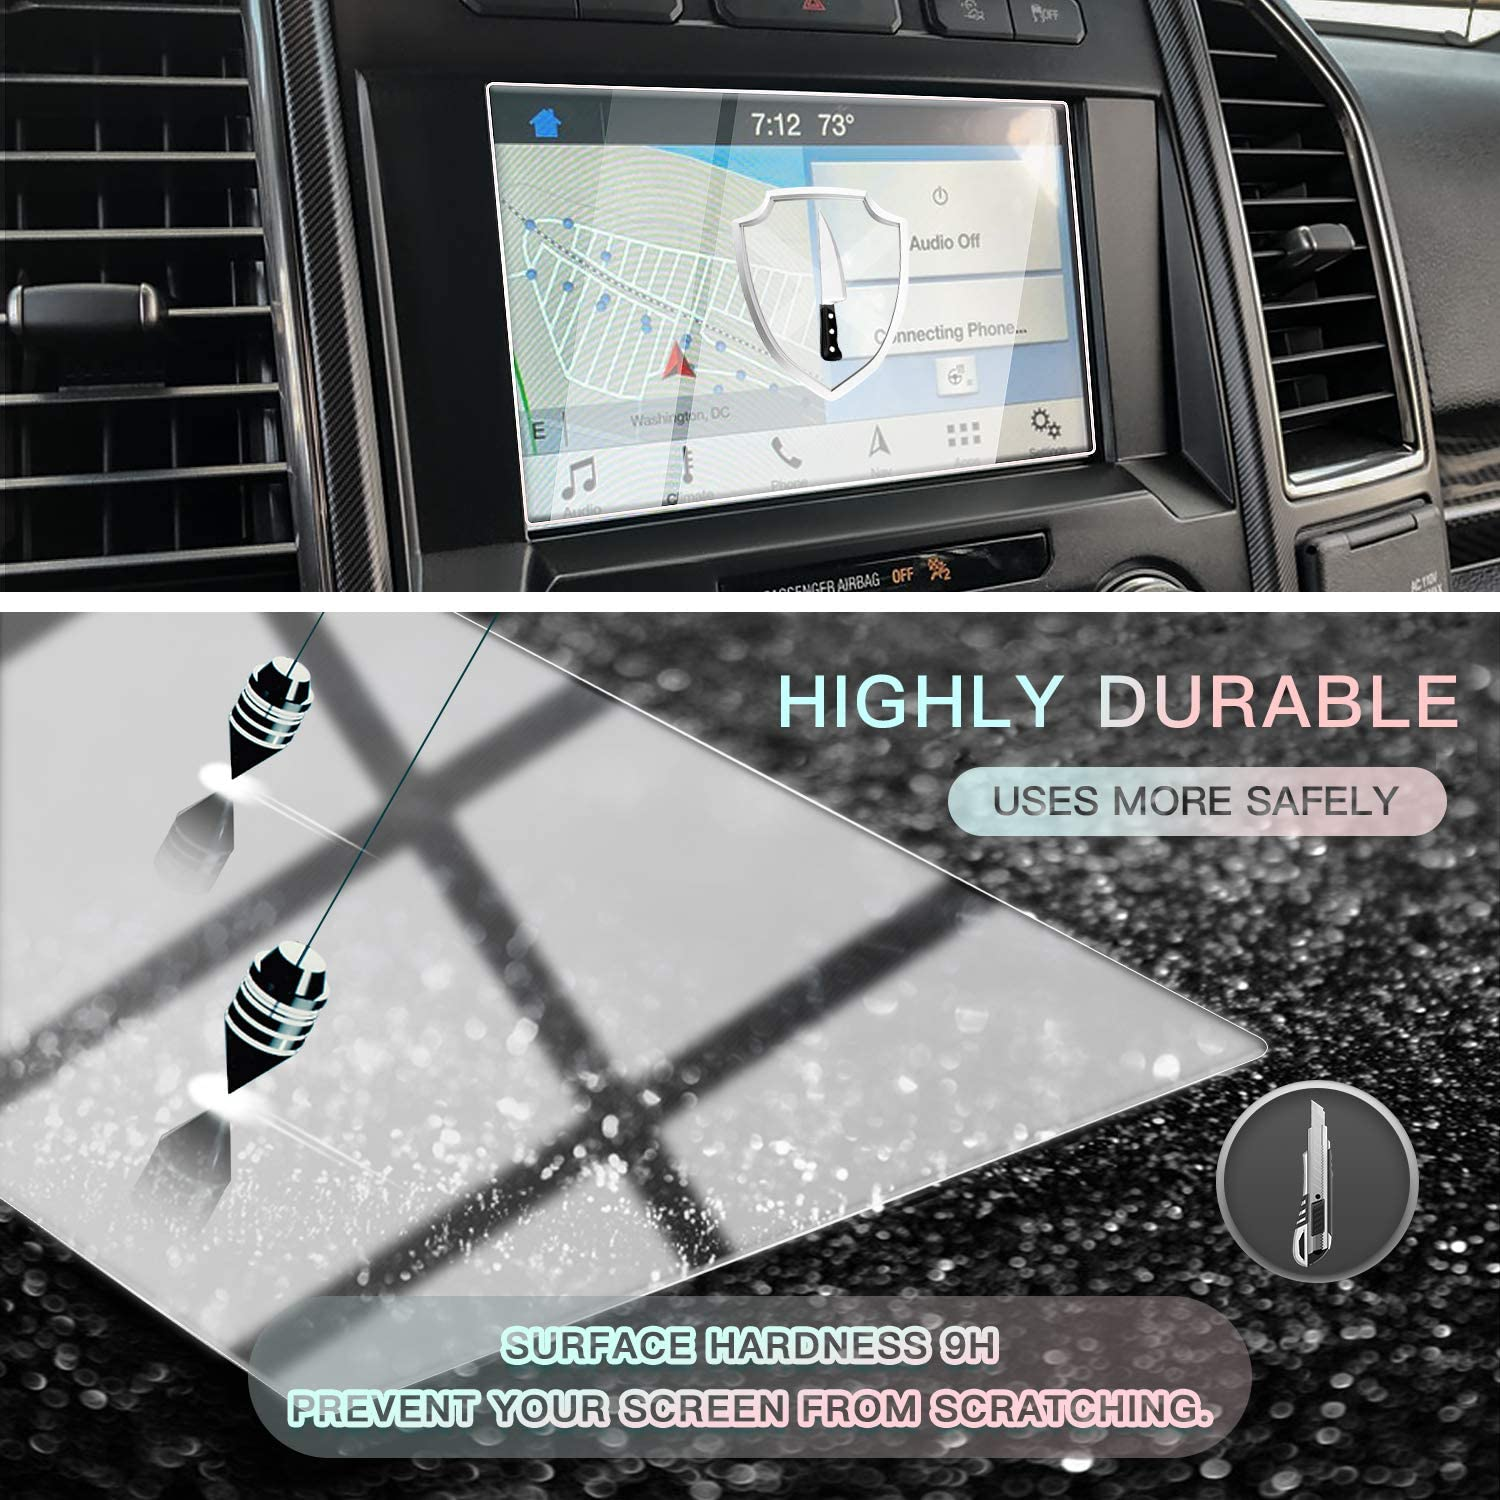 CDEFG Car Screen Protector Center Control Navigation Touch Screen Protector for 2014-2020 Ford F150 F250 F-150 Raptor 8 Inch Tempered Glass HD Scratch Resistance